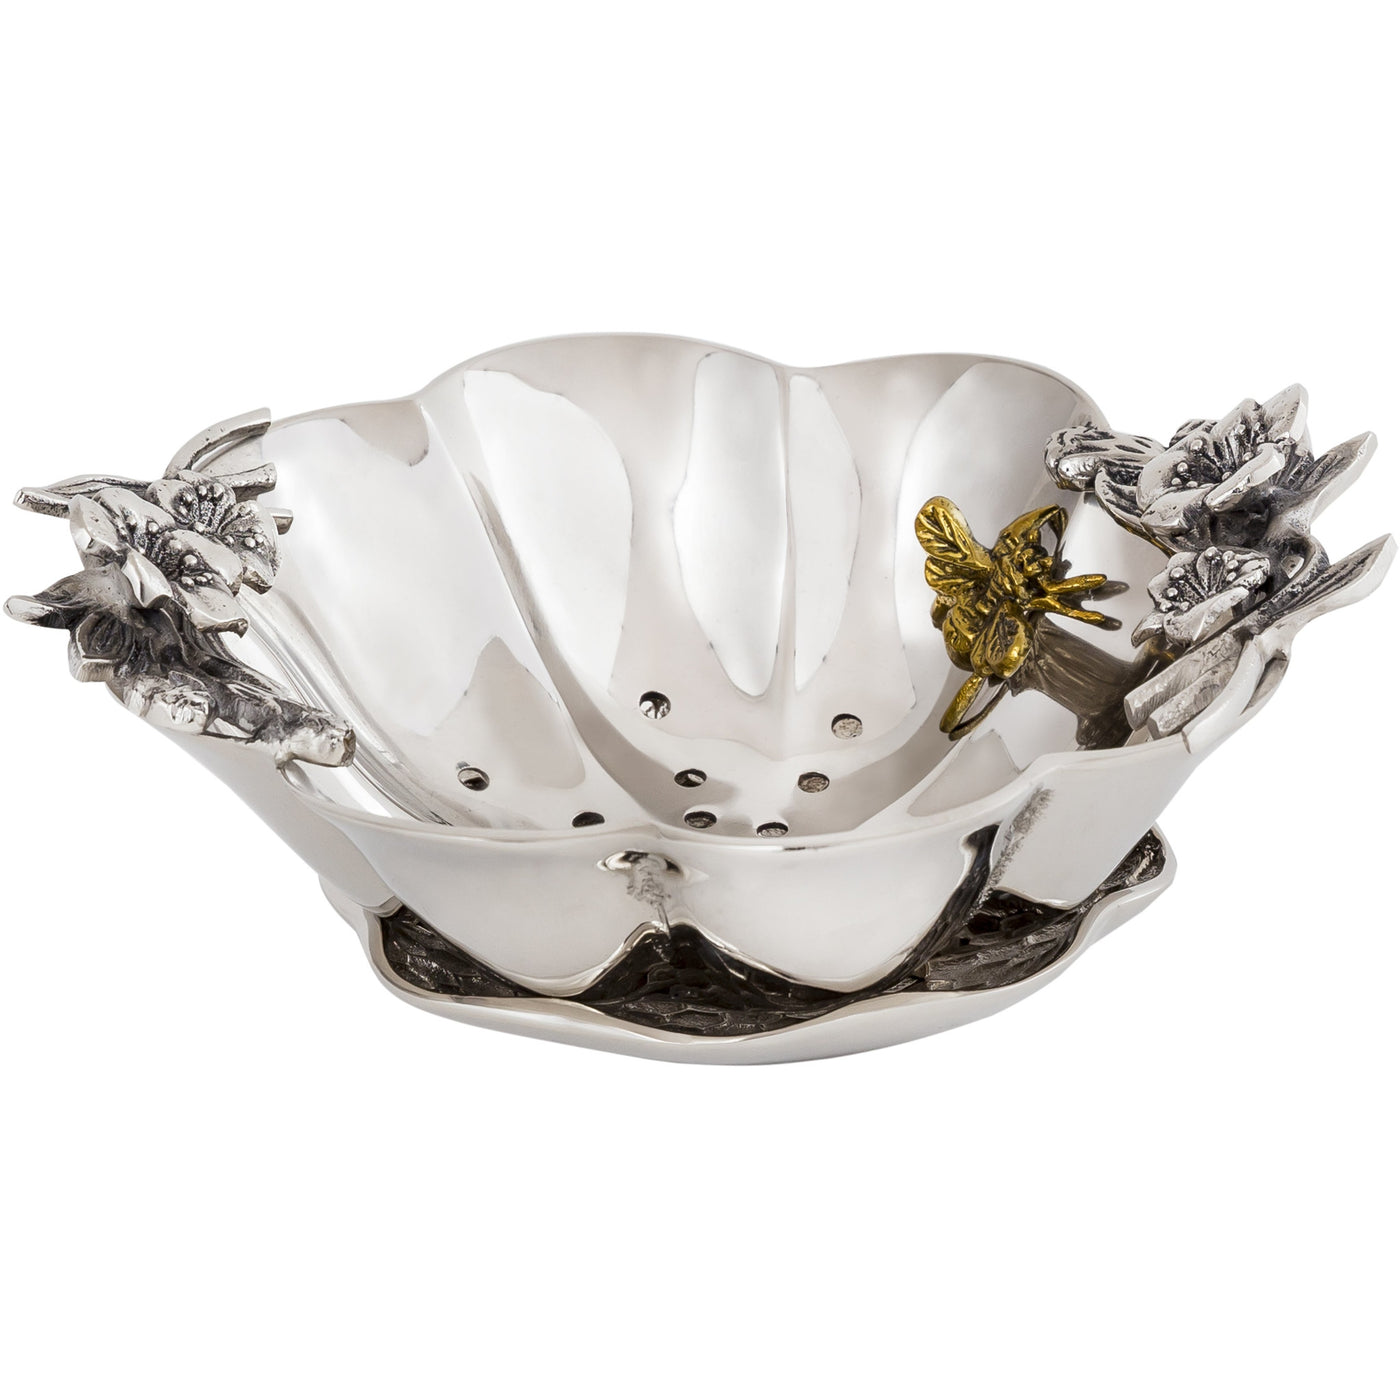 Bumble Bee Berry Bowl w/Under Tray